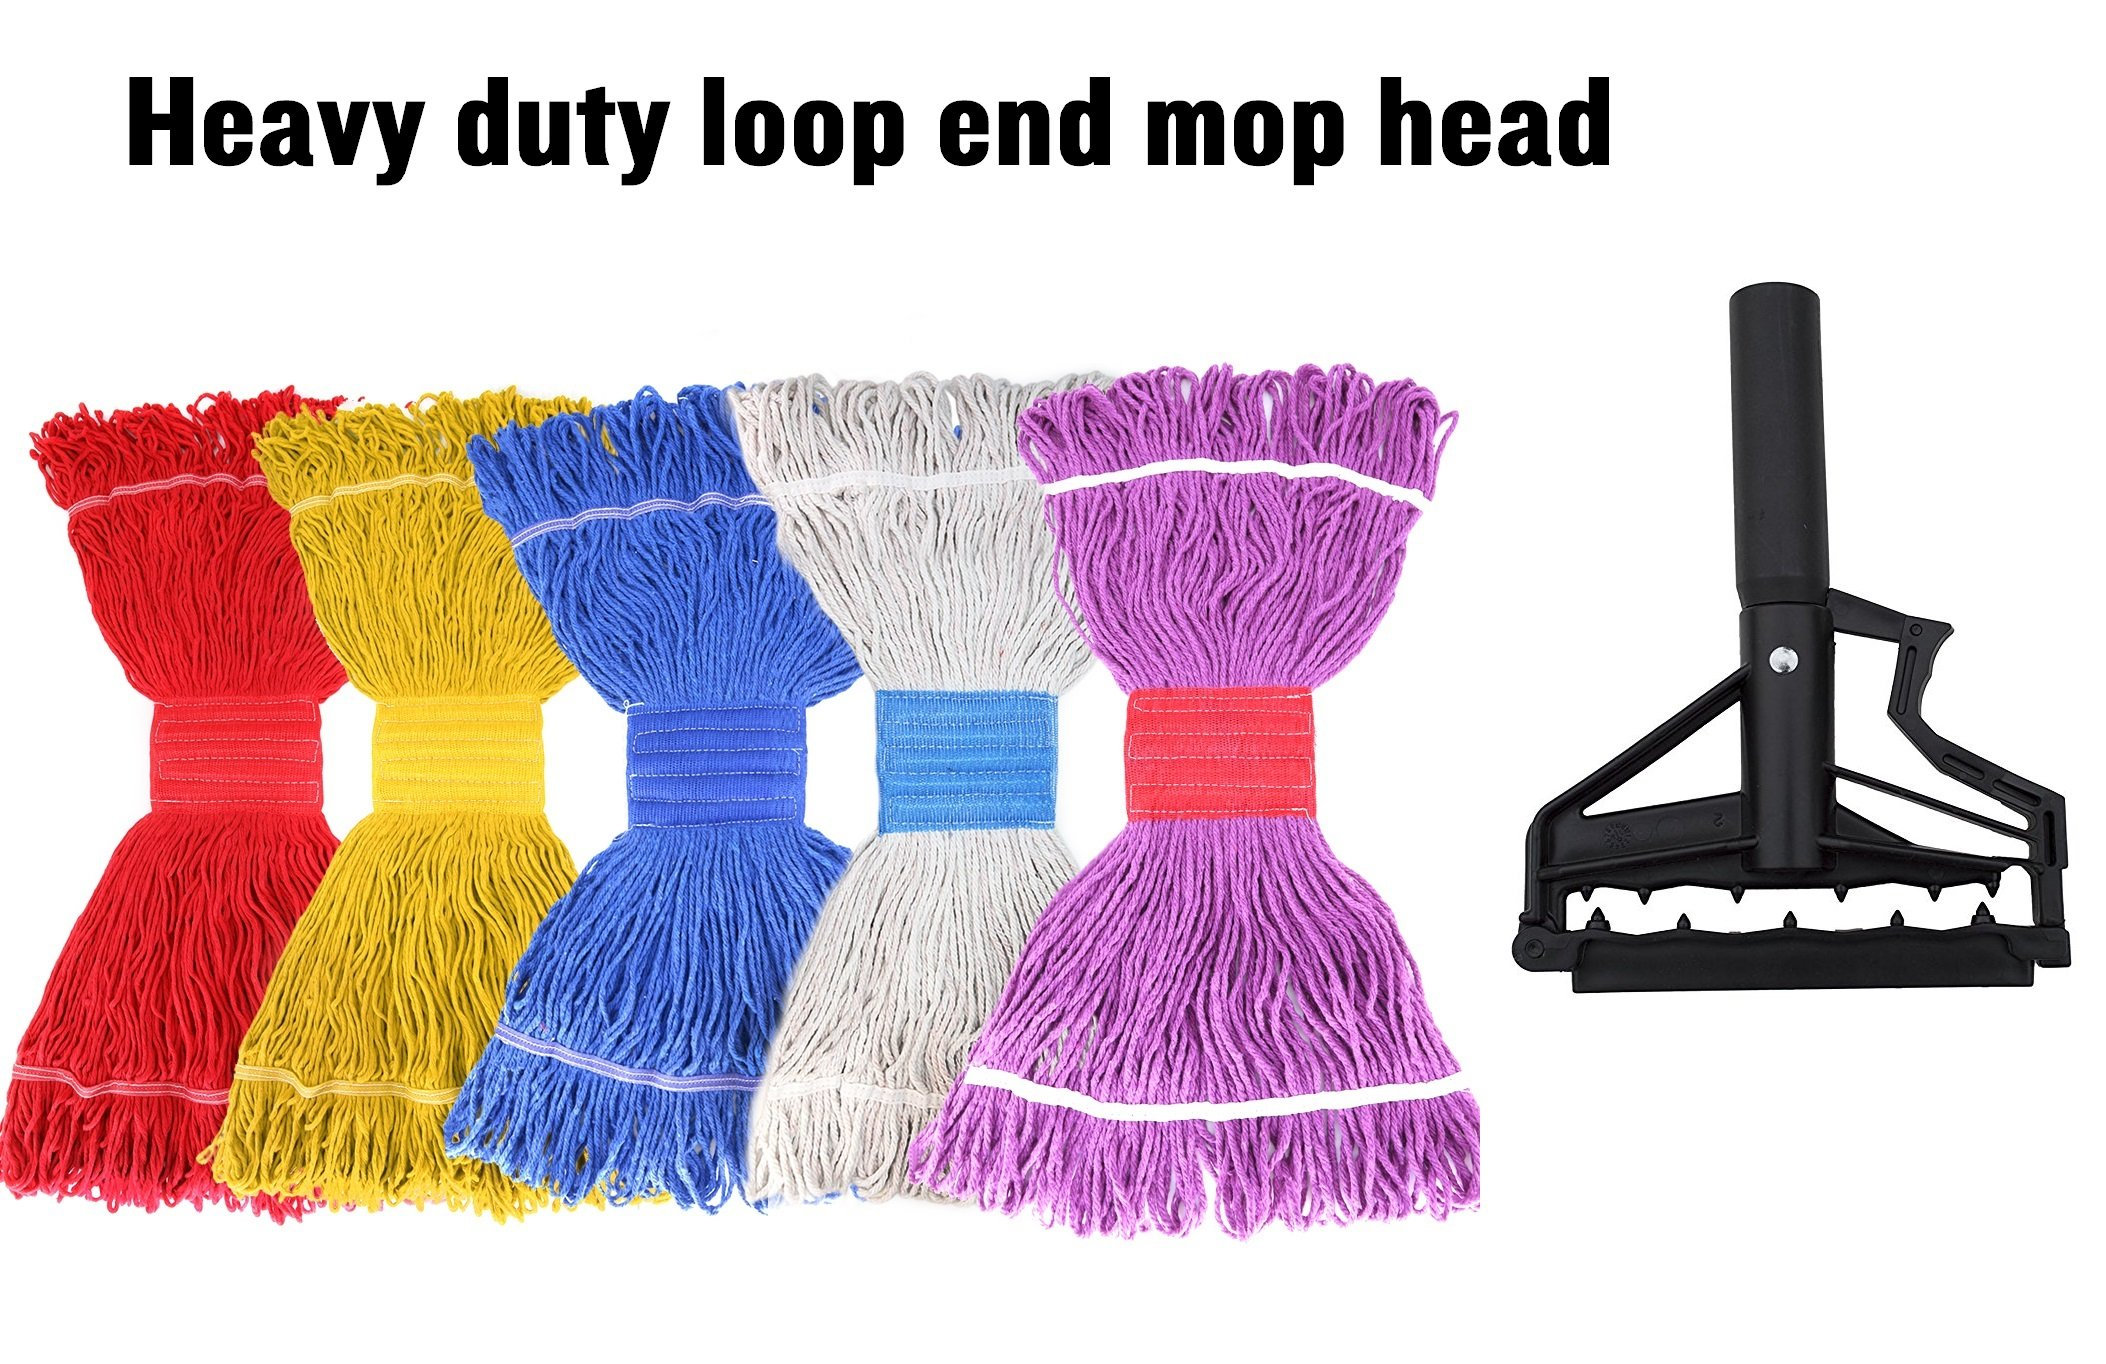 Tidy Monster String Mop Head Fit O-Cedar Rubbermaid Mop System Heavy Duty Loop-End String Mop Refills Super Stitch Blend Large Mop Heads Replacement (5 Pack-Random Color) by Tidy Monster (Image #6)